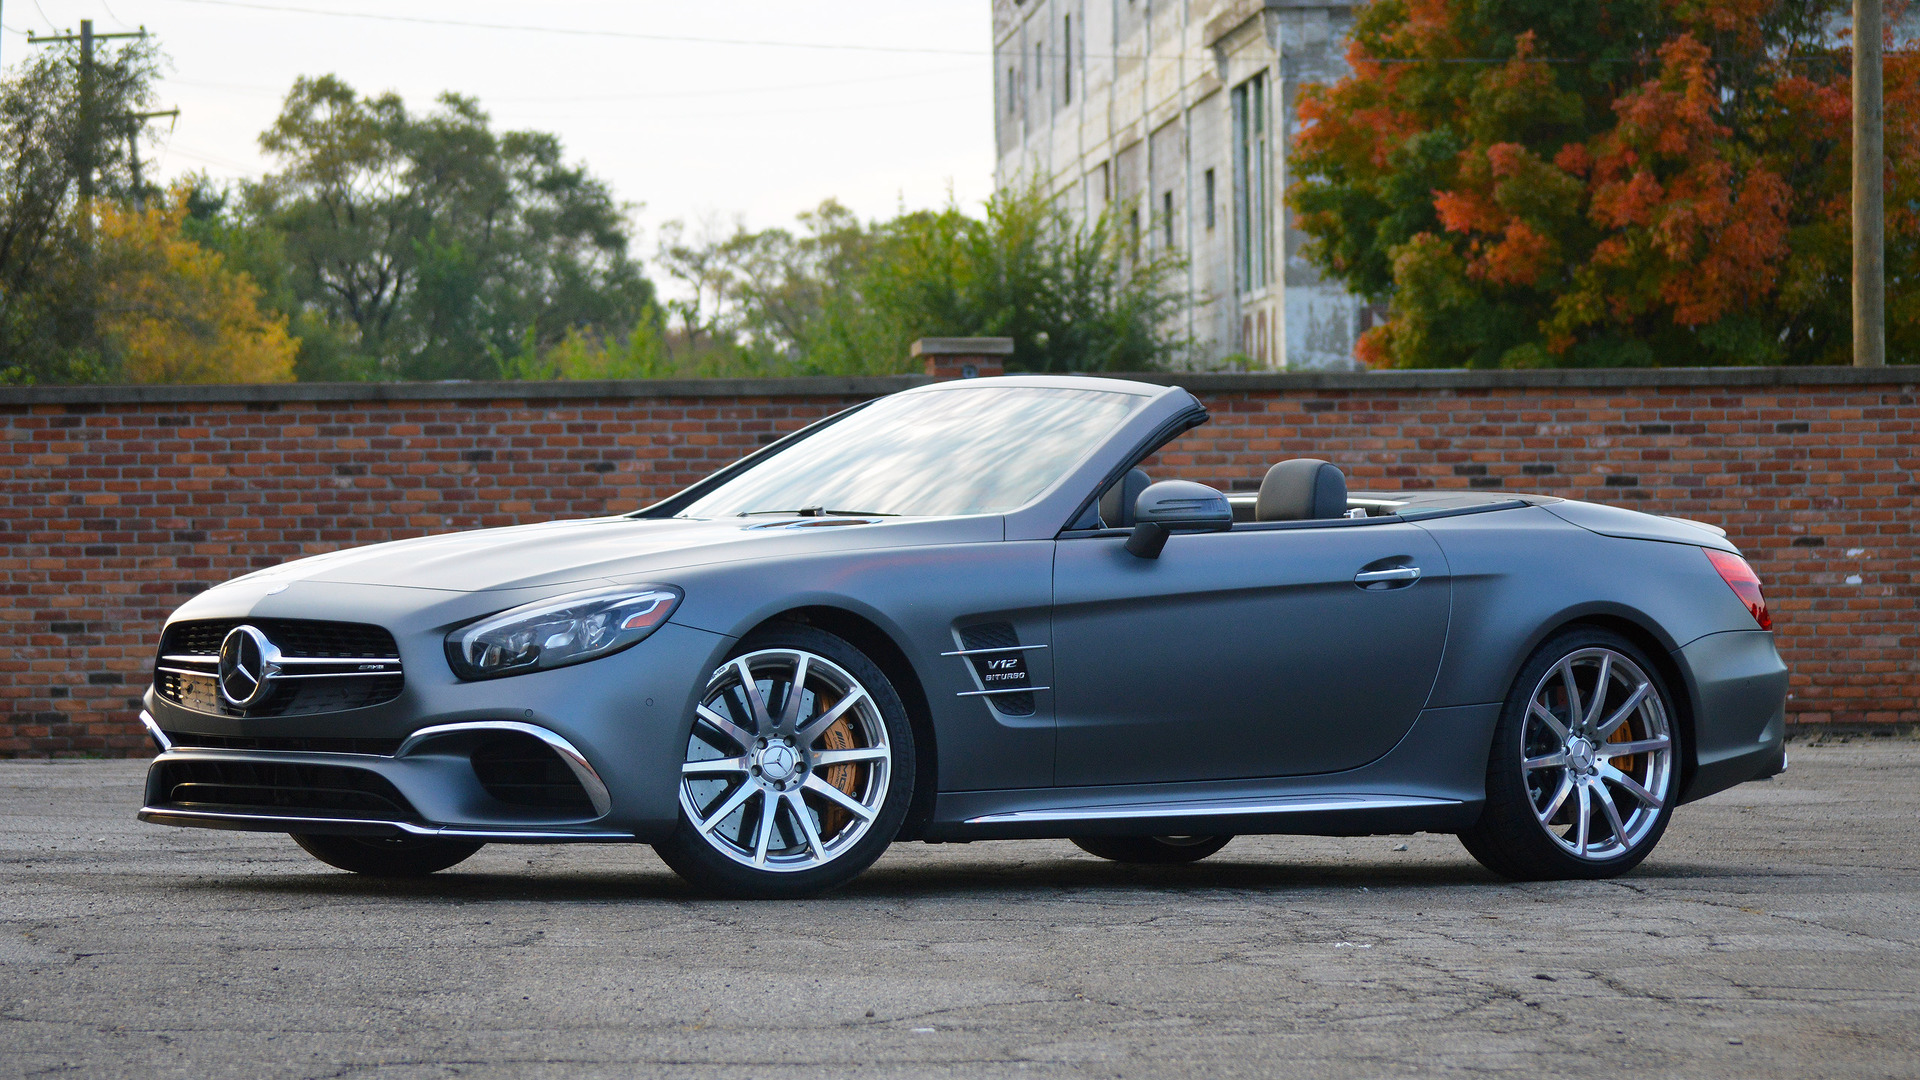 https://icdn-1.motor1.com/images/mgl/e1mPW/s1/2017-mercedes-amg-sl65-review.jpg